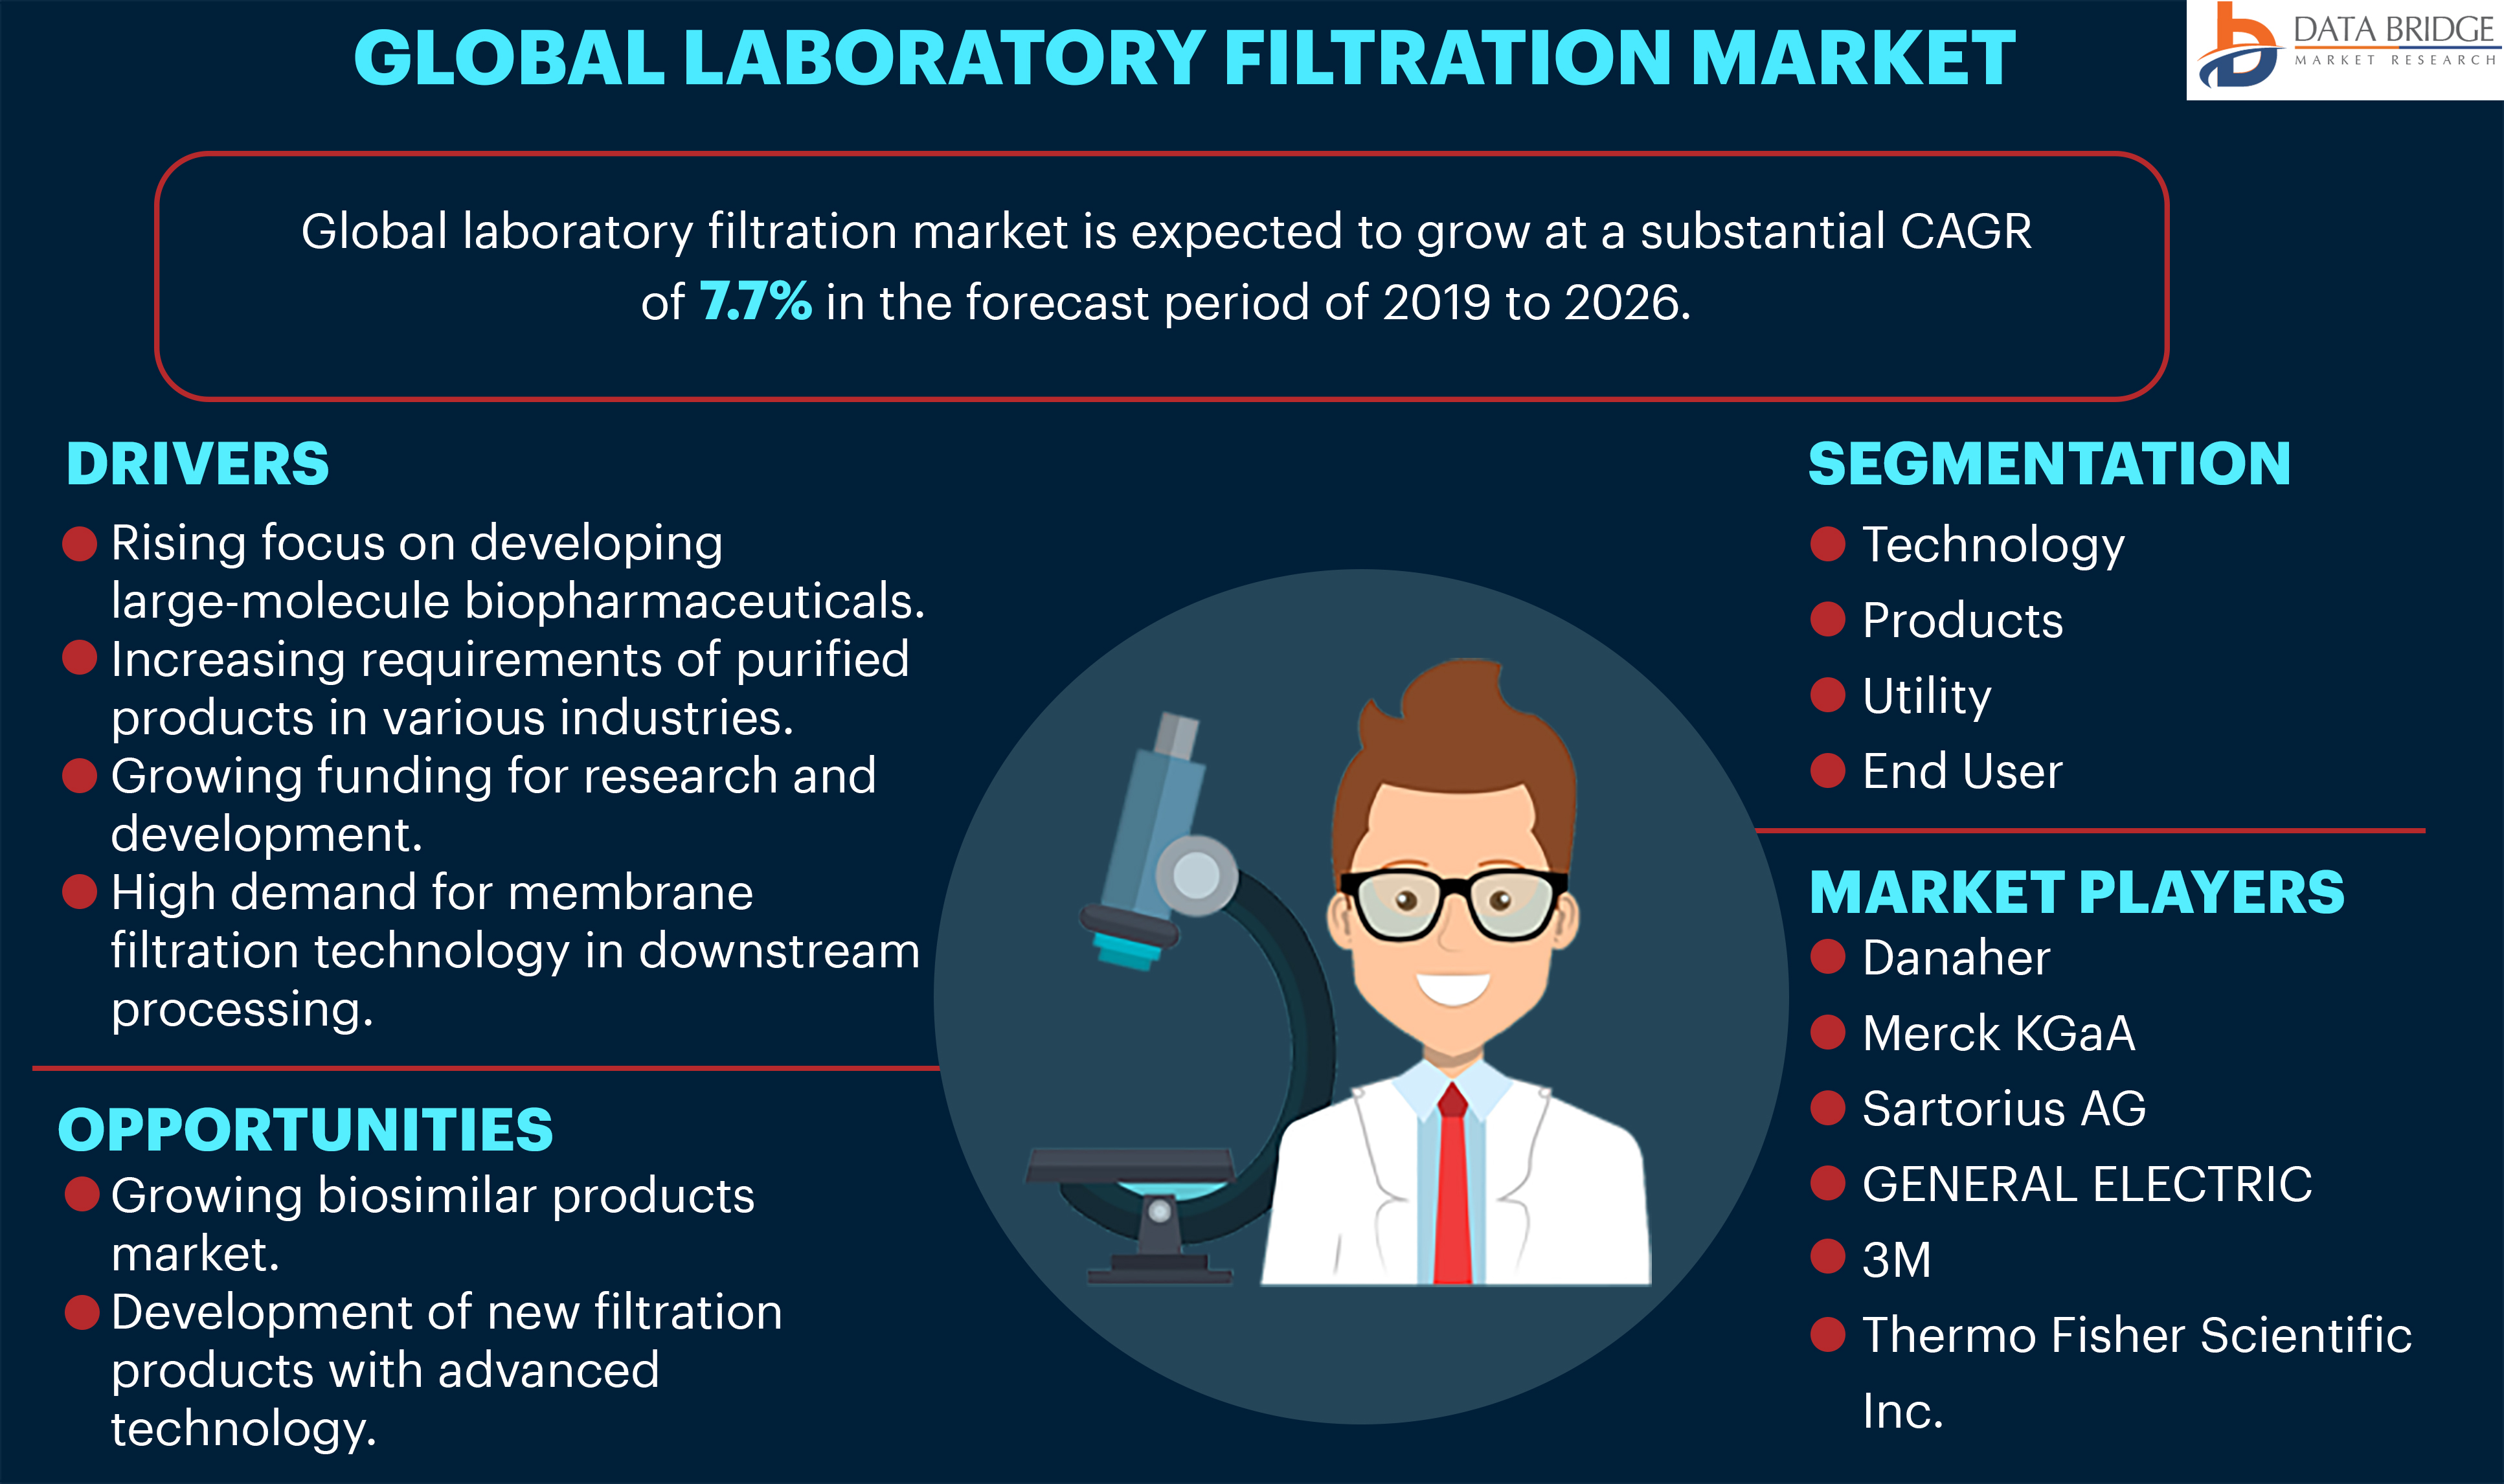 Global Laboratory Filtration Market Forecast (2019-2026), Technology, Products, Utility and Industry Analysis by Key Competitors like Danaher, Merck KGaA, SARTORIUS AG, GENERAL ELECTRIC, 3M, Others